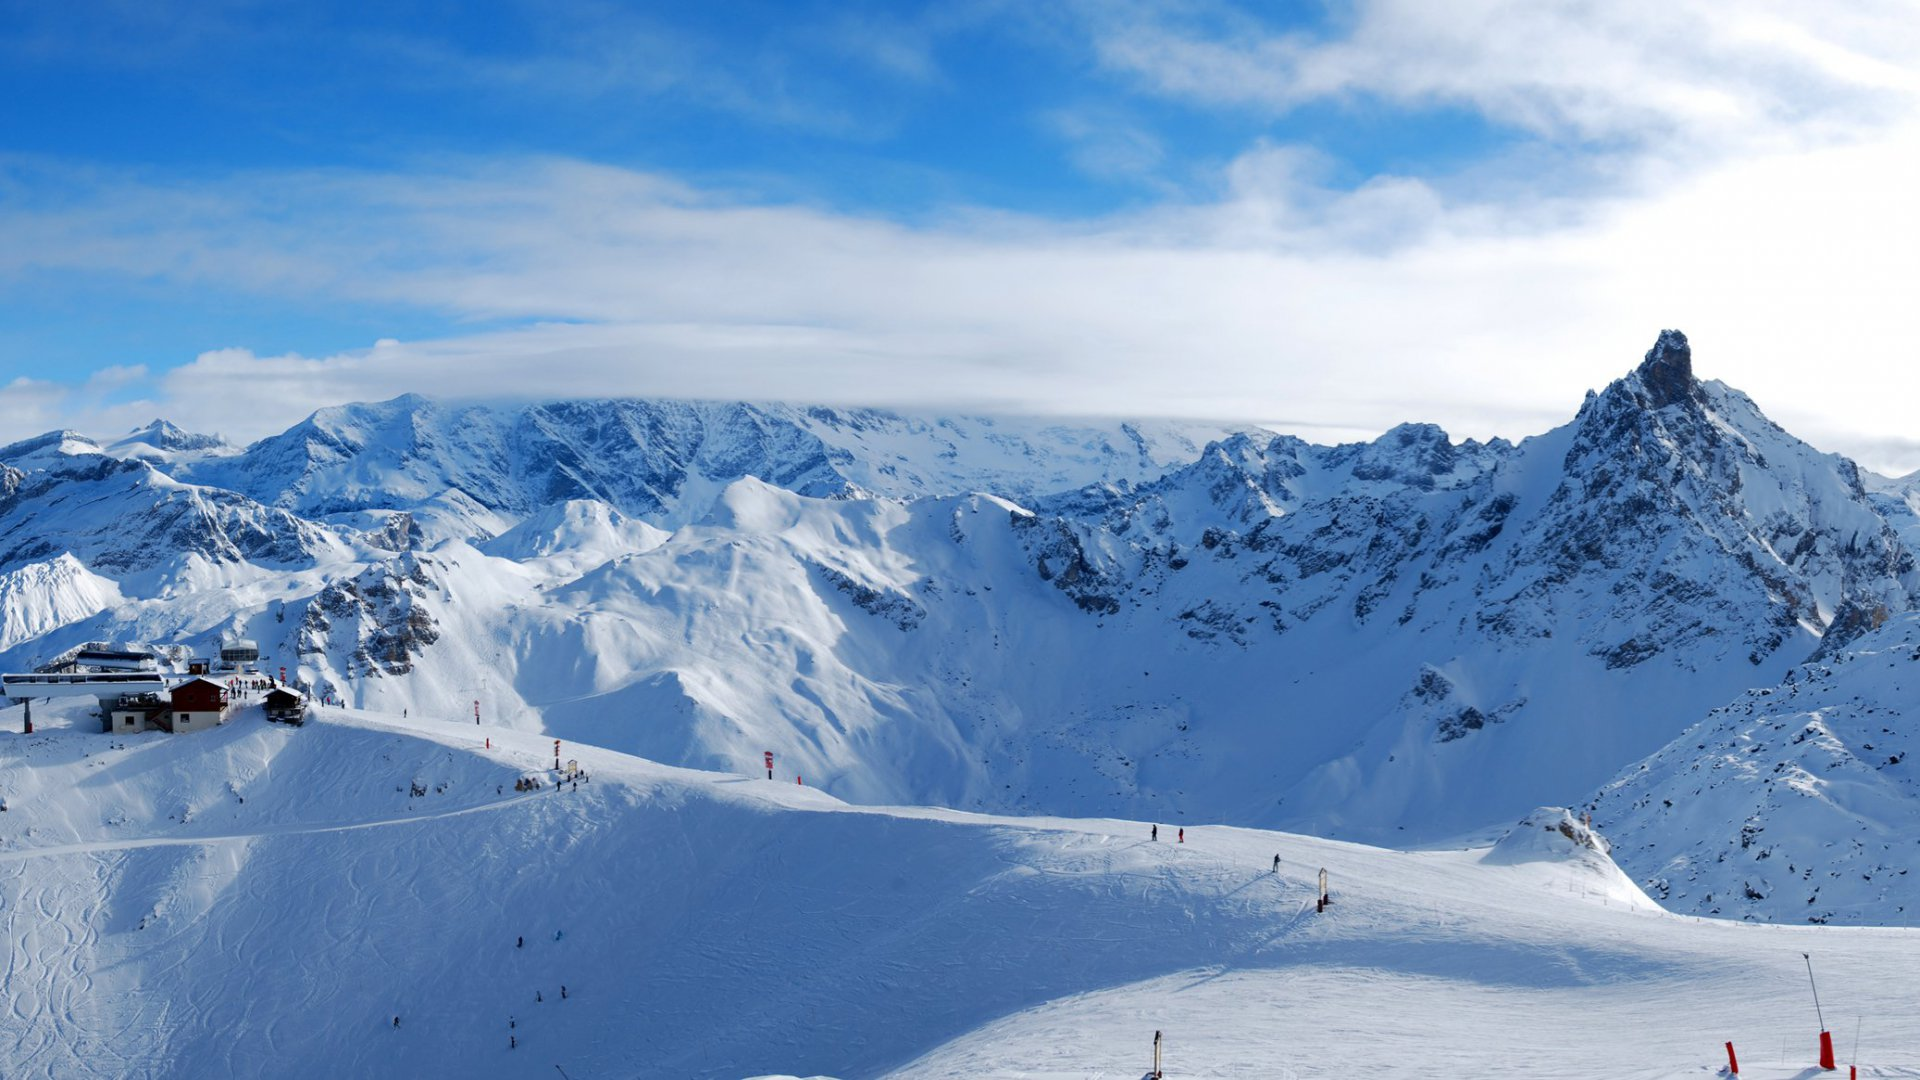 The Courchevel Ski Area